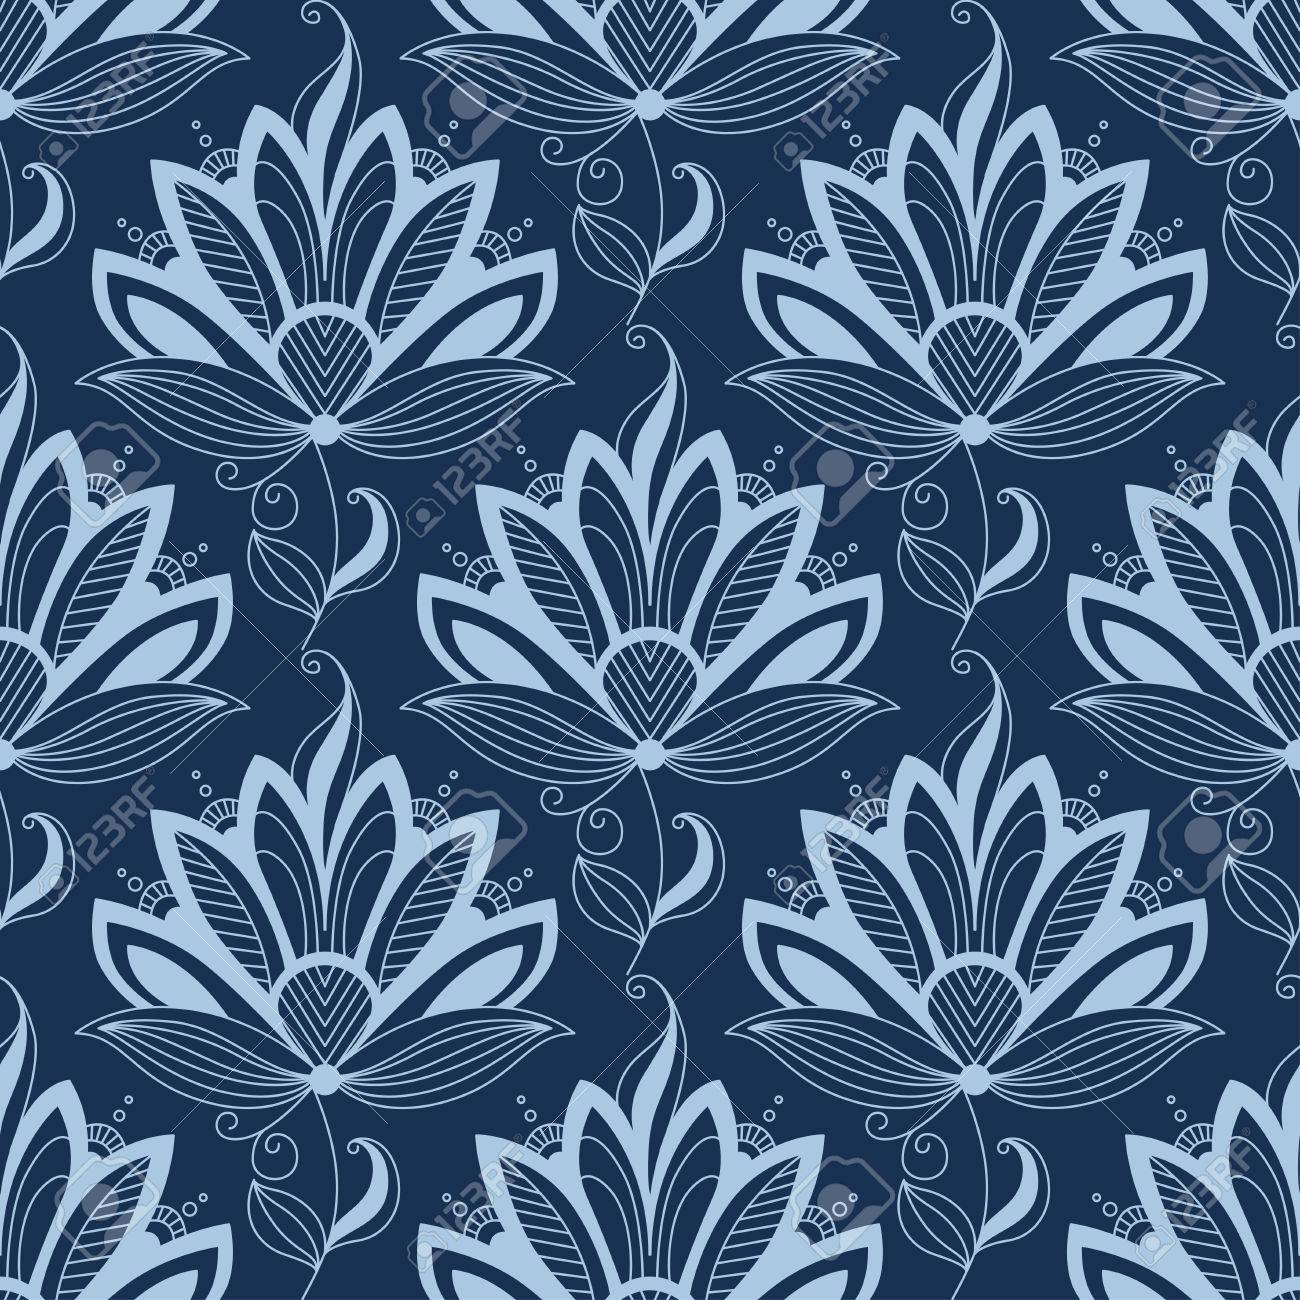 Blue Floral Seamless Pattern In Paisley Indian Or Persian Style On Dark Colored Background